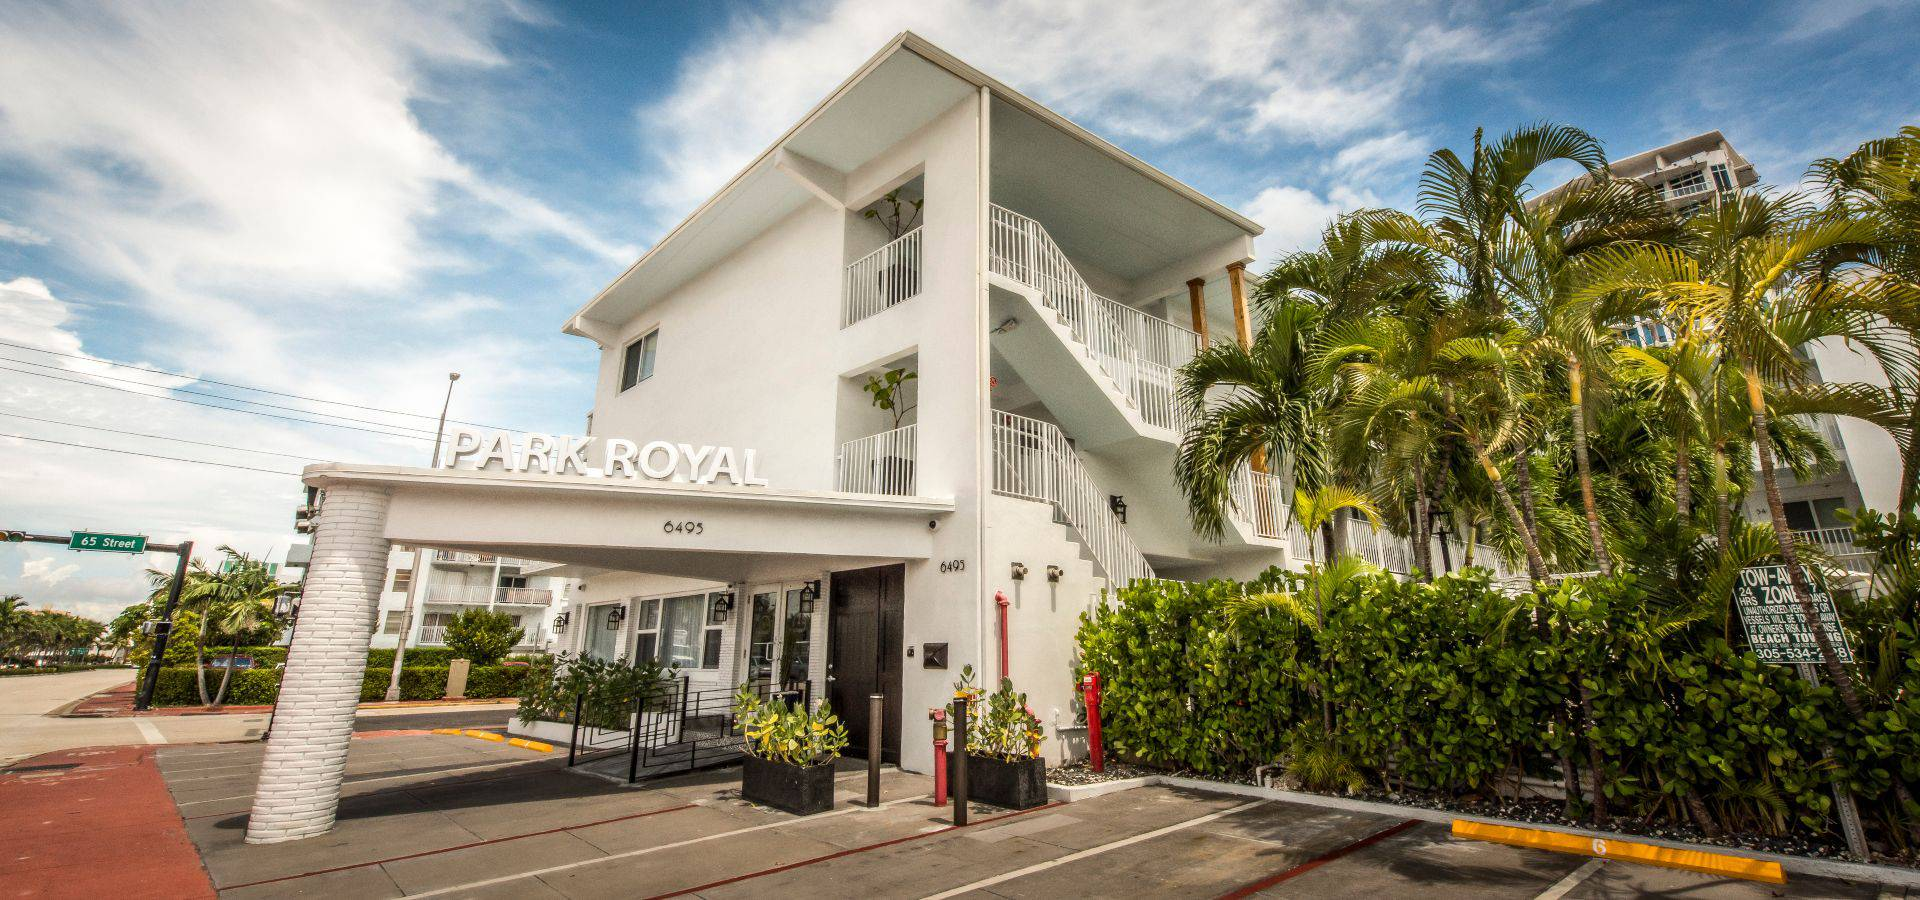 Park Royal - Miami Beach - {{pagina.nombre}}